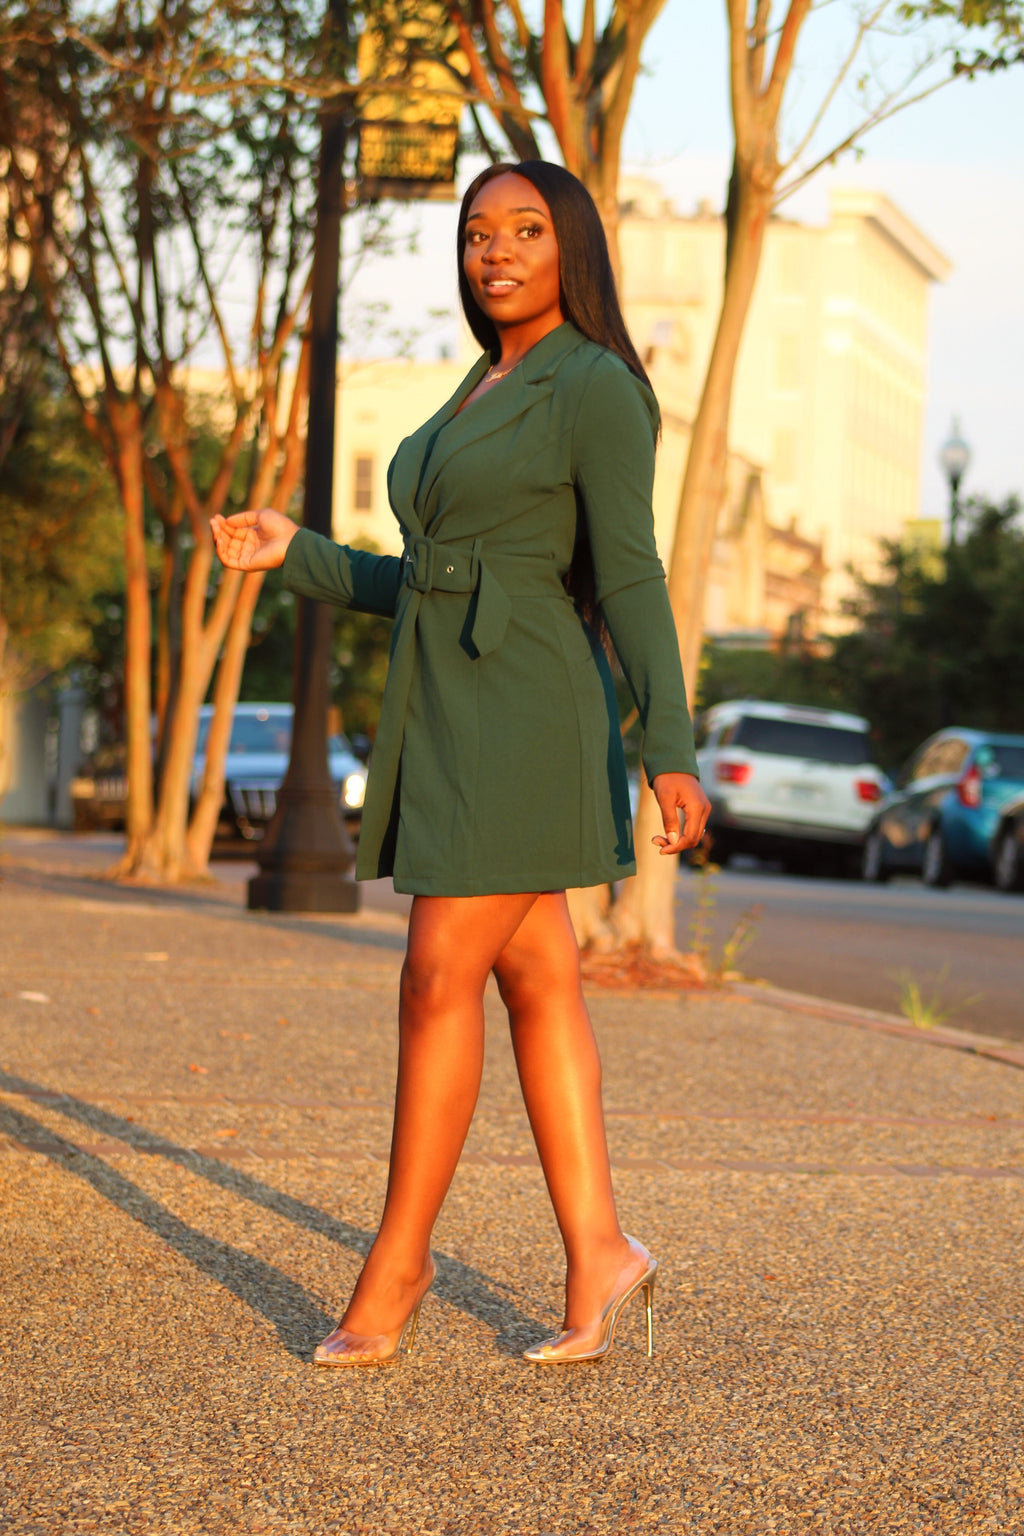 Emerald Green Tuxedo Jacket/Dress